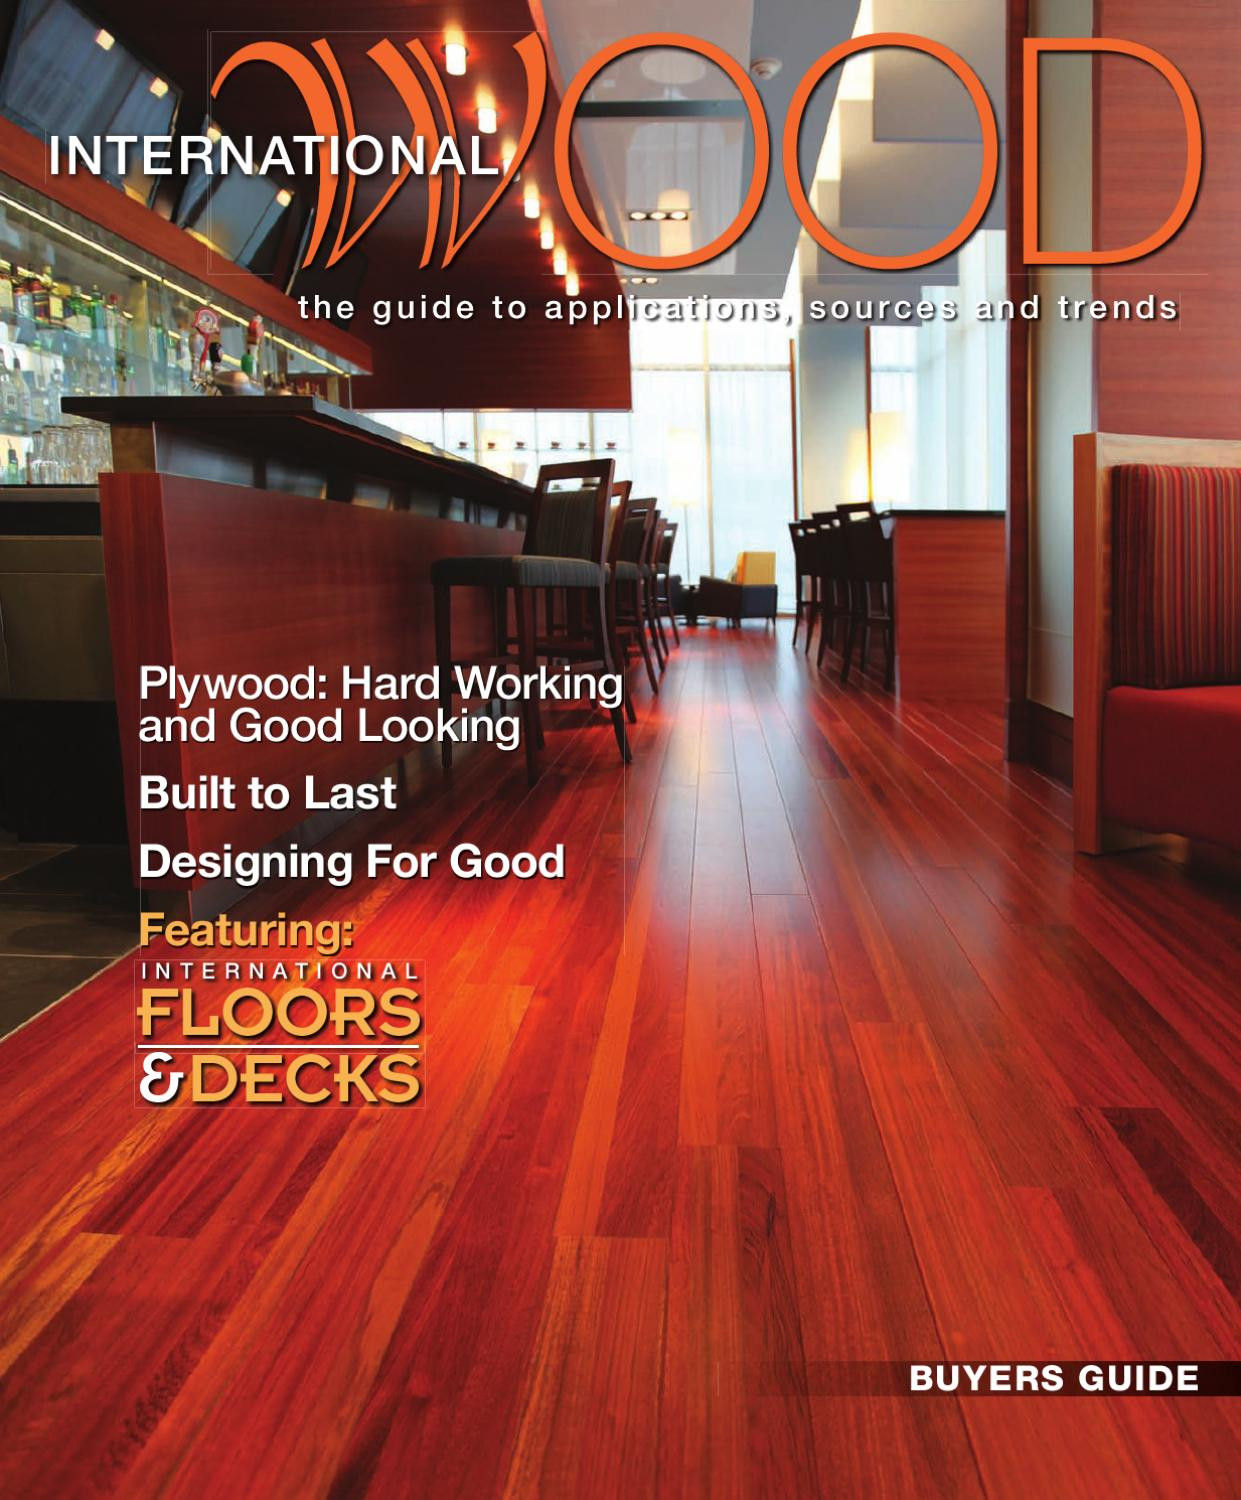 Hardwood Floor Refinishing Rock Hill Sc Of International Wood by Bedford Falls Communications issuu Intended for Page 1